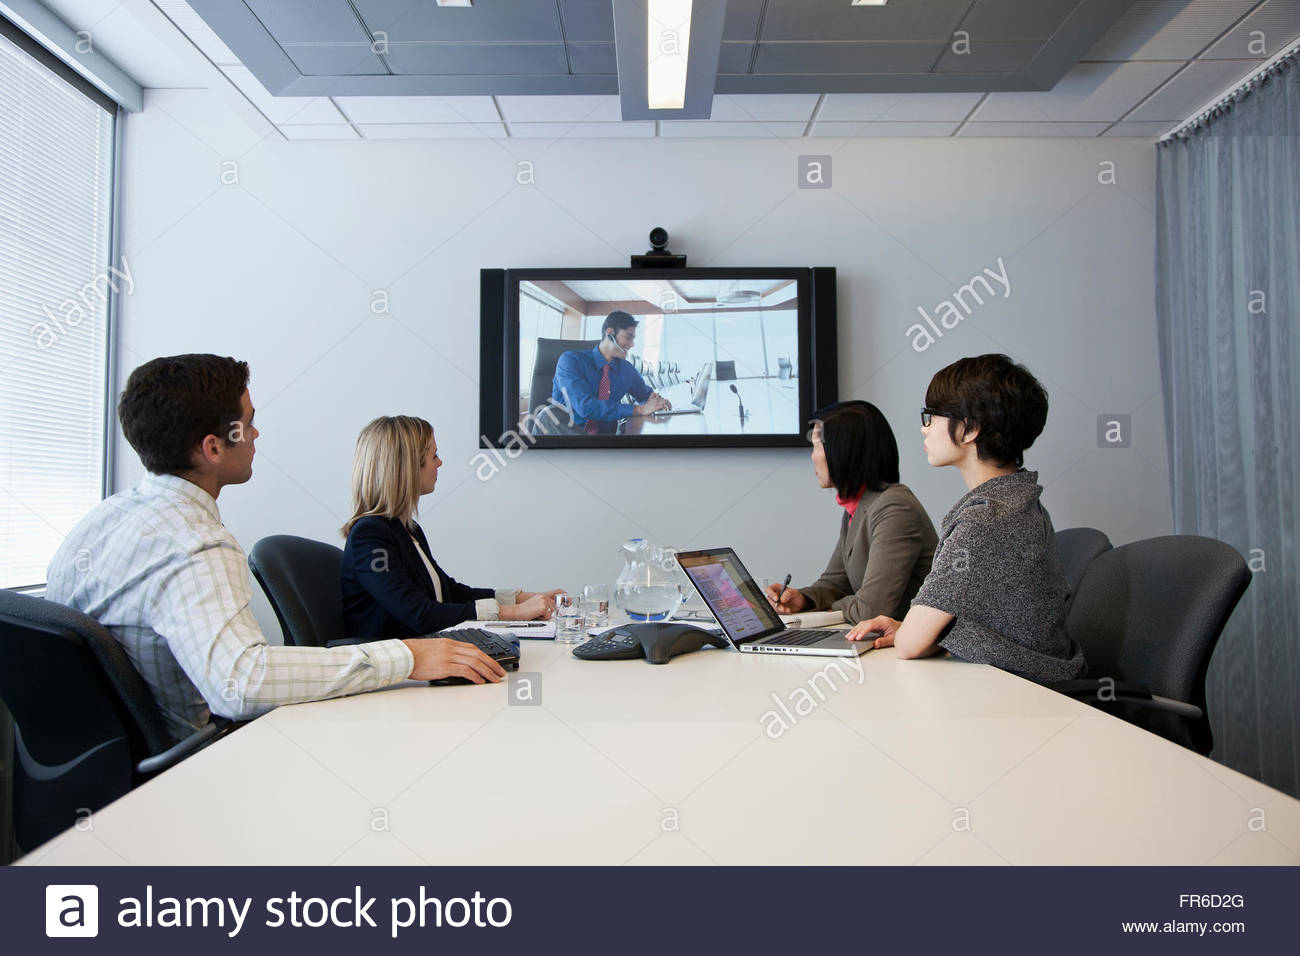 business group video conferencing - Stock Image